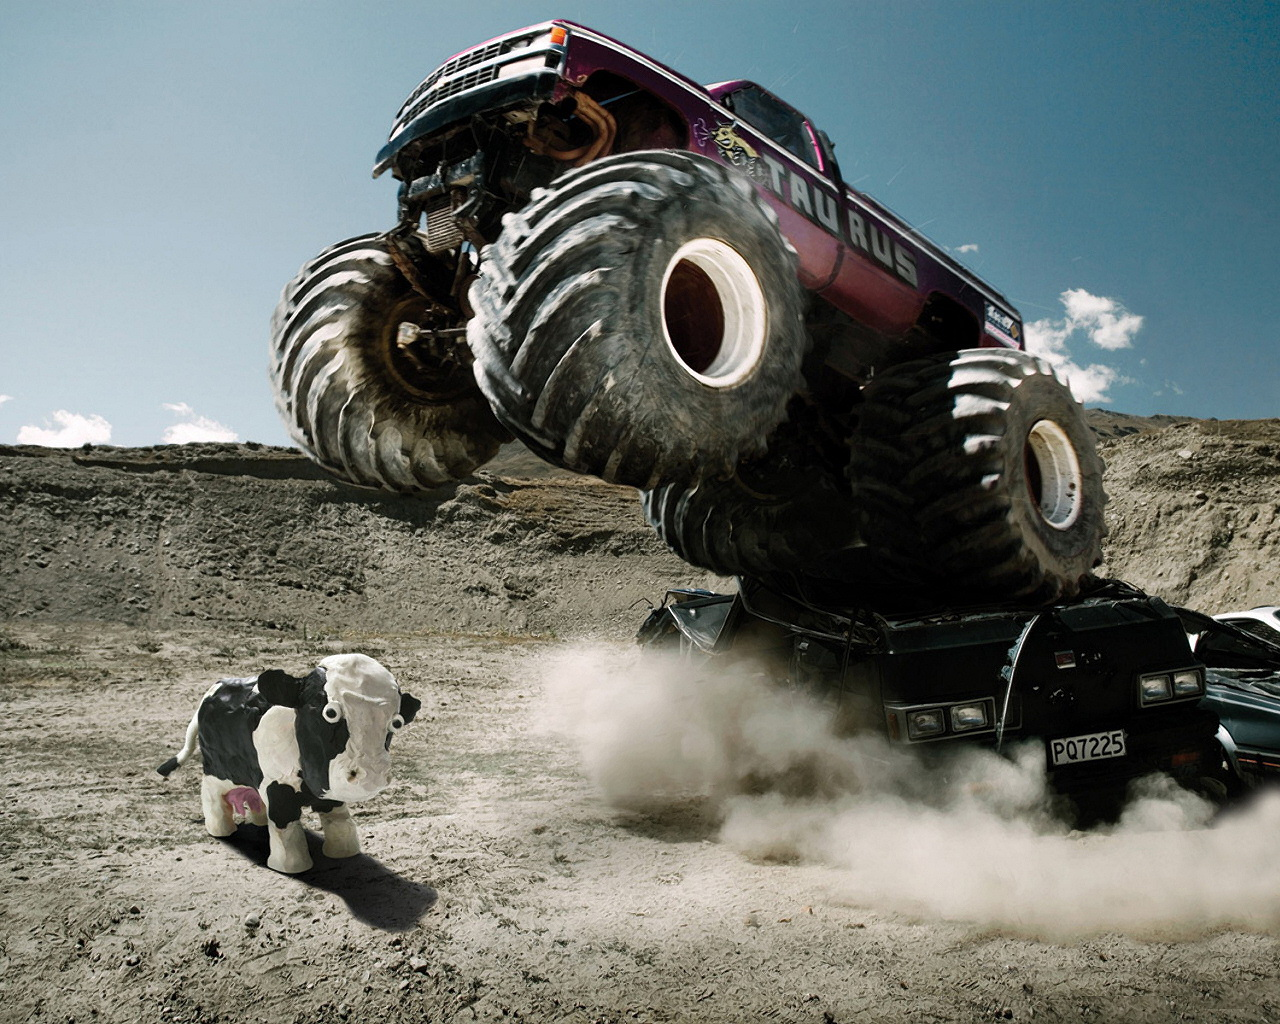 Monster Truck Some Amazing Wallpapers Images High Definition All Hd Wallpapers